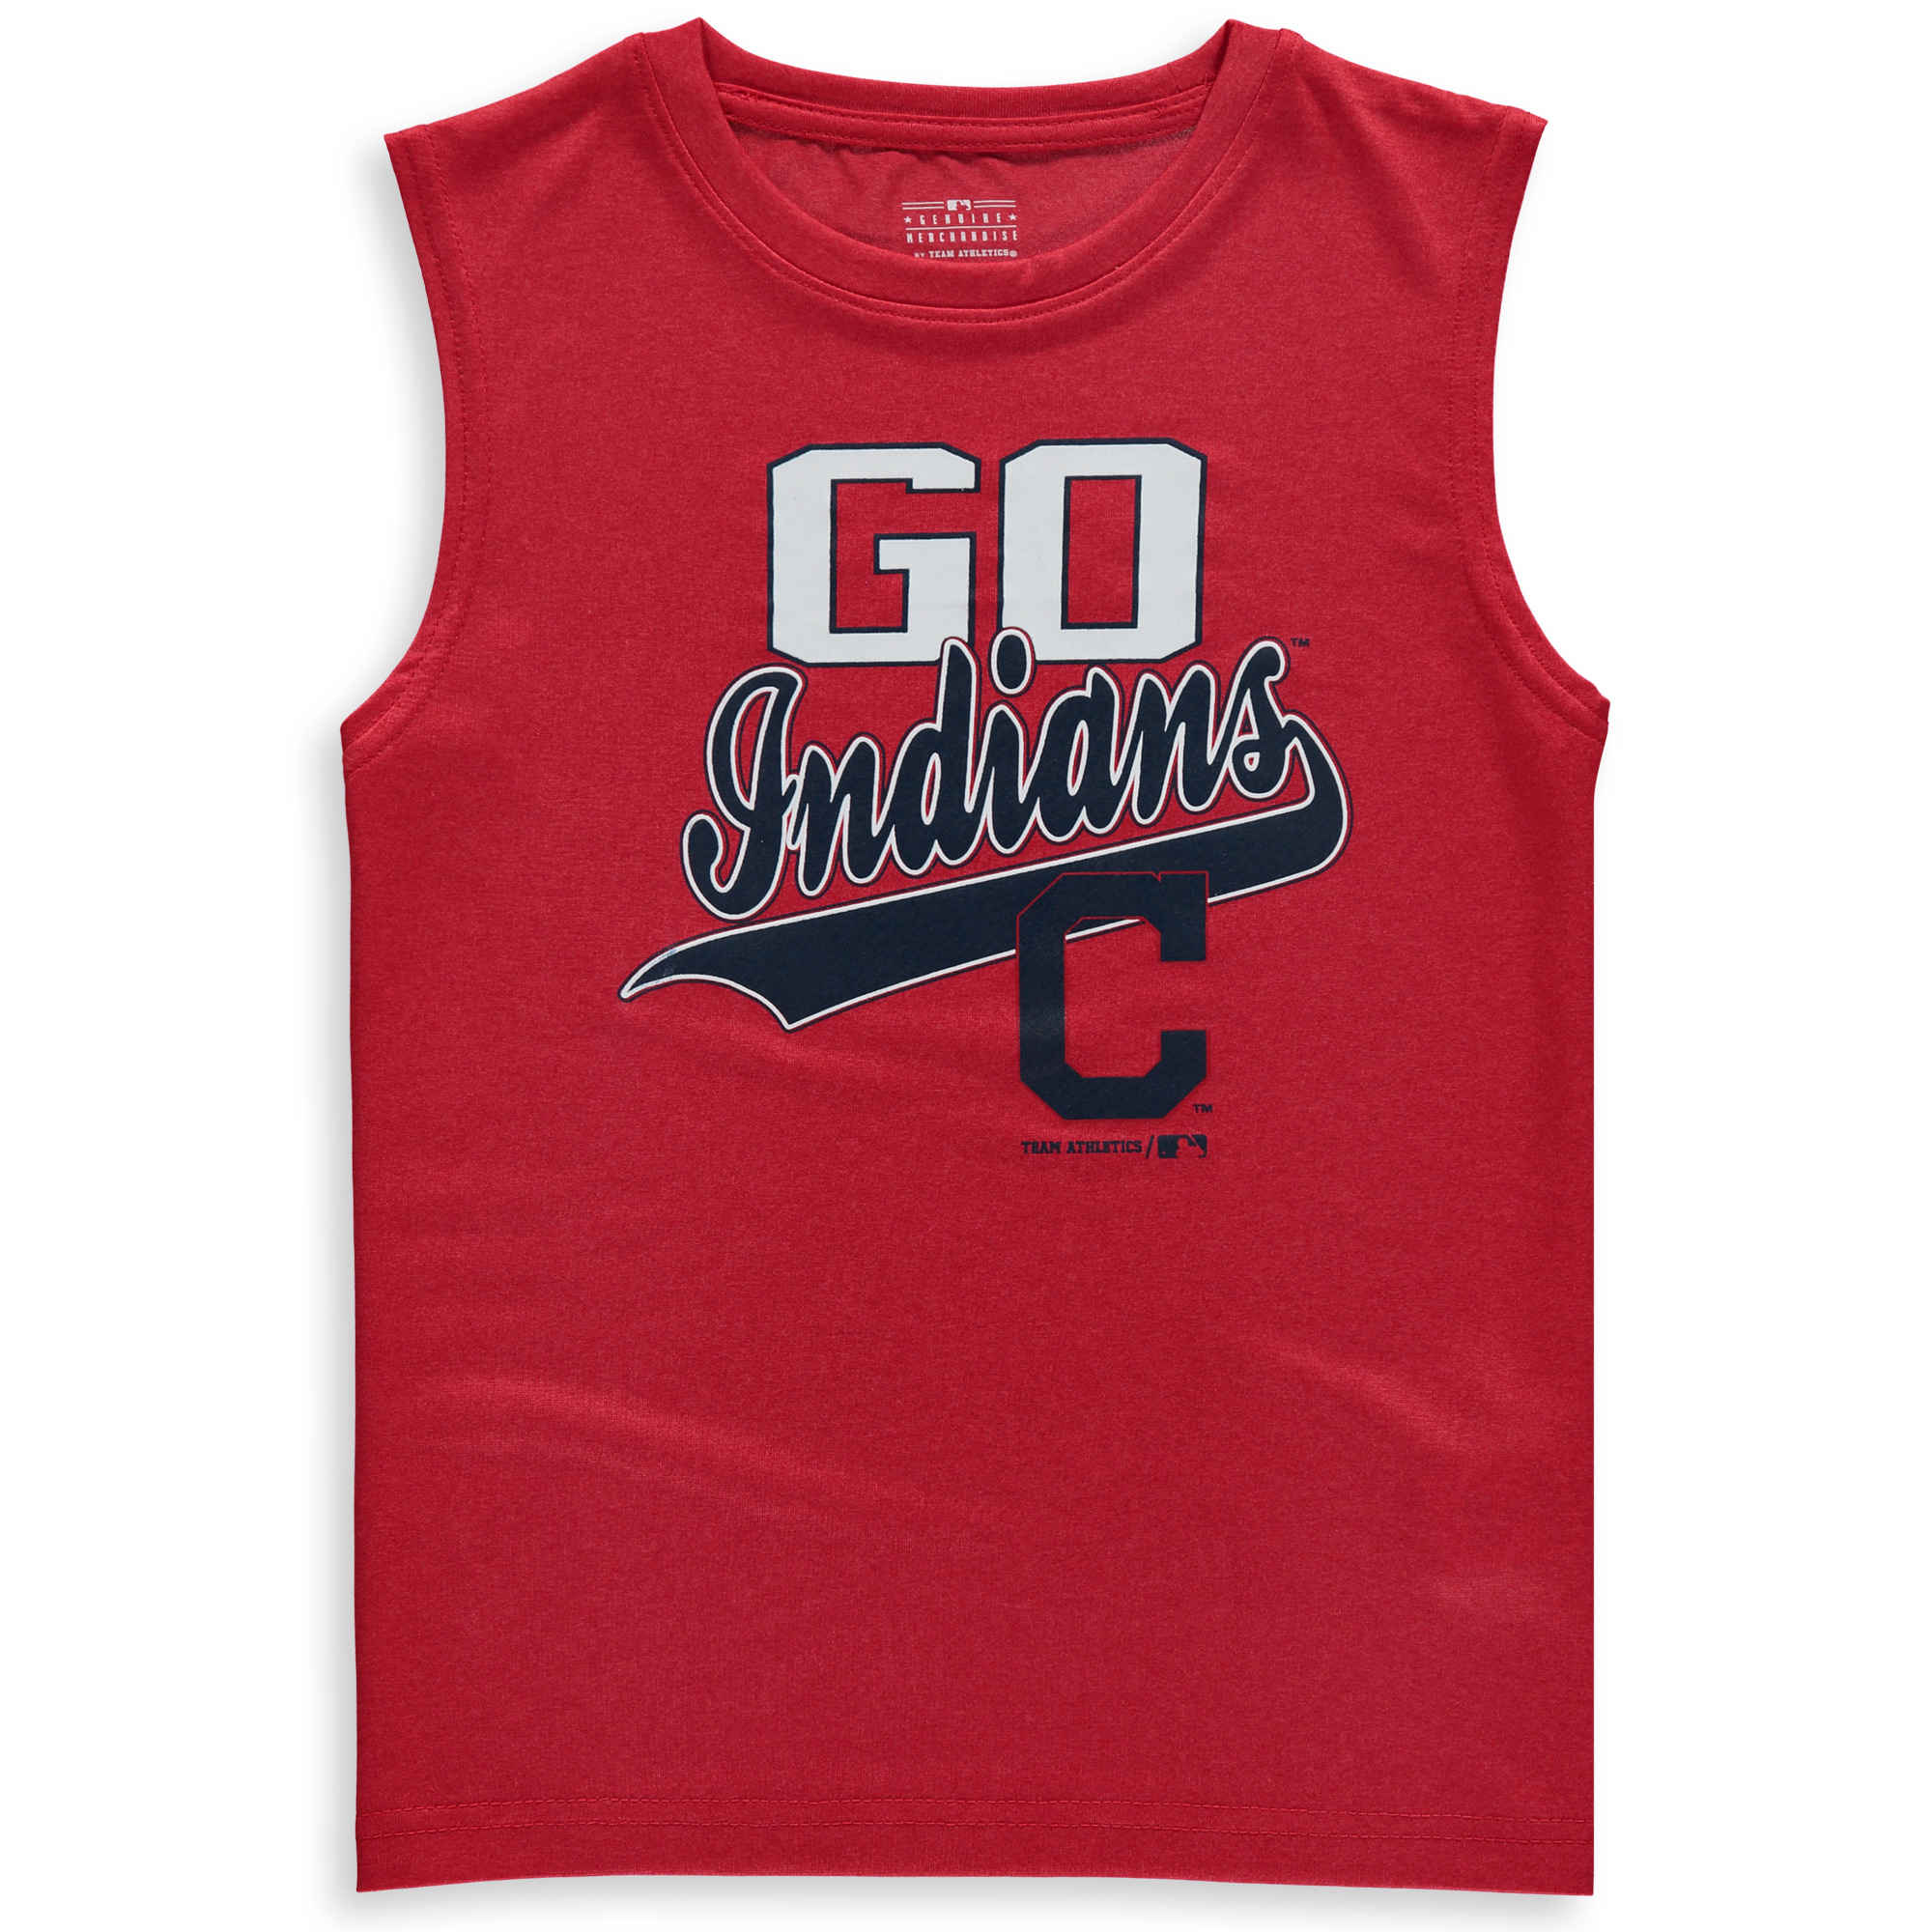 MLB Cleveland INDIANS TEE Sleeveless Boys Fashion Jersey Tee 100% Polyester Quick Dry Alternate Color Team Tee 4-18